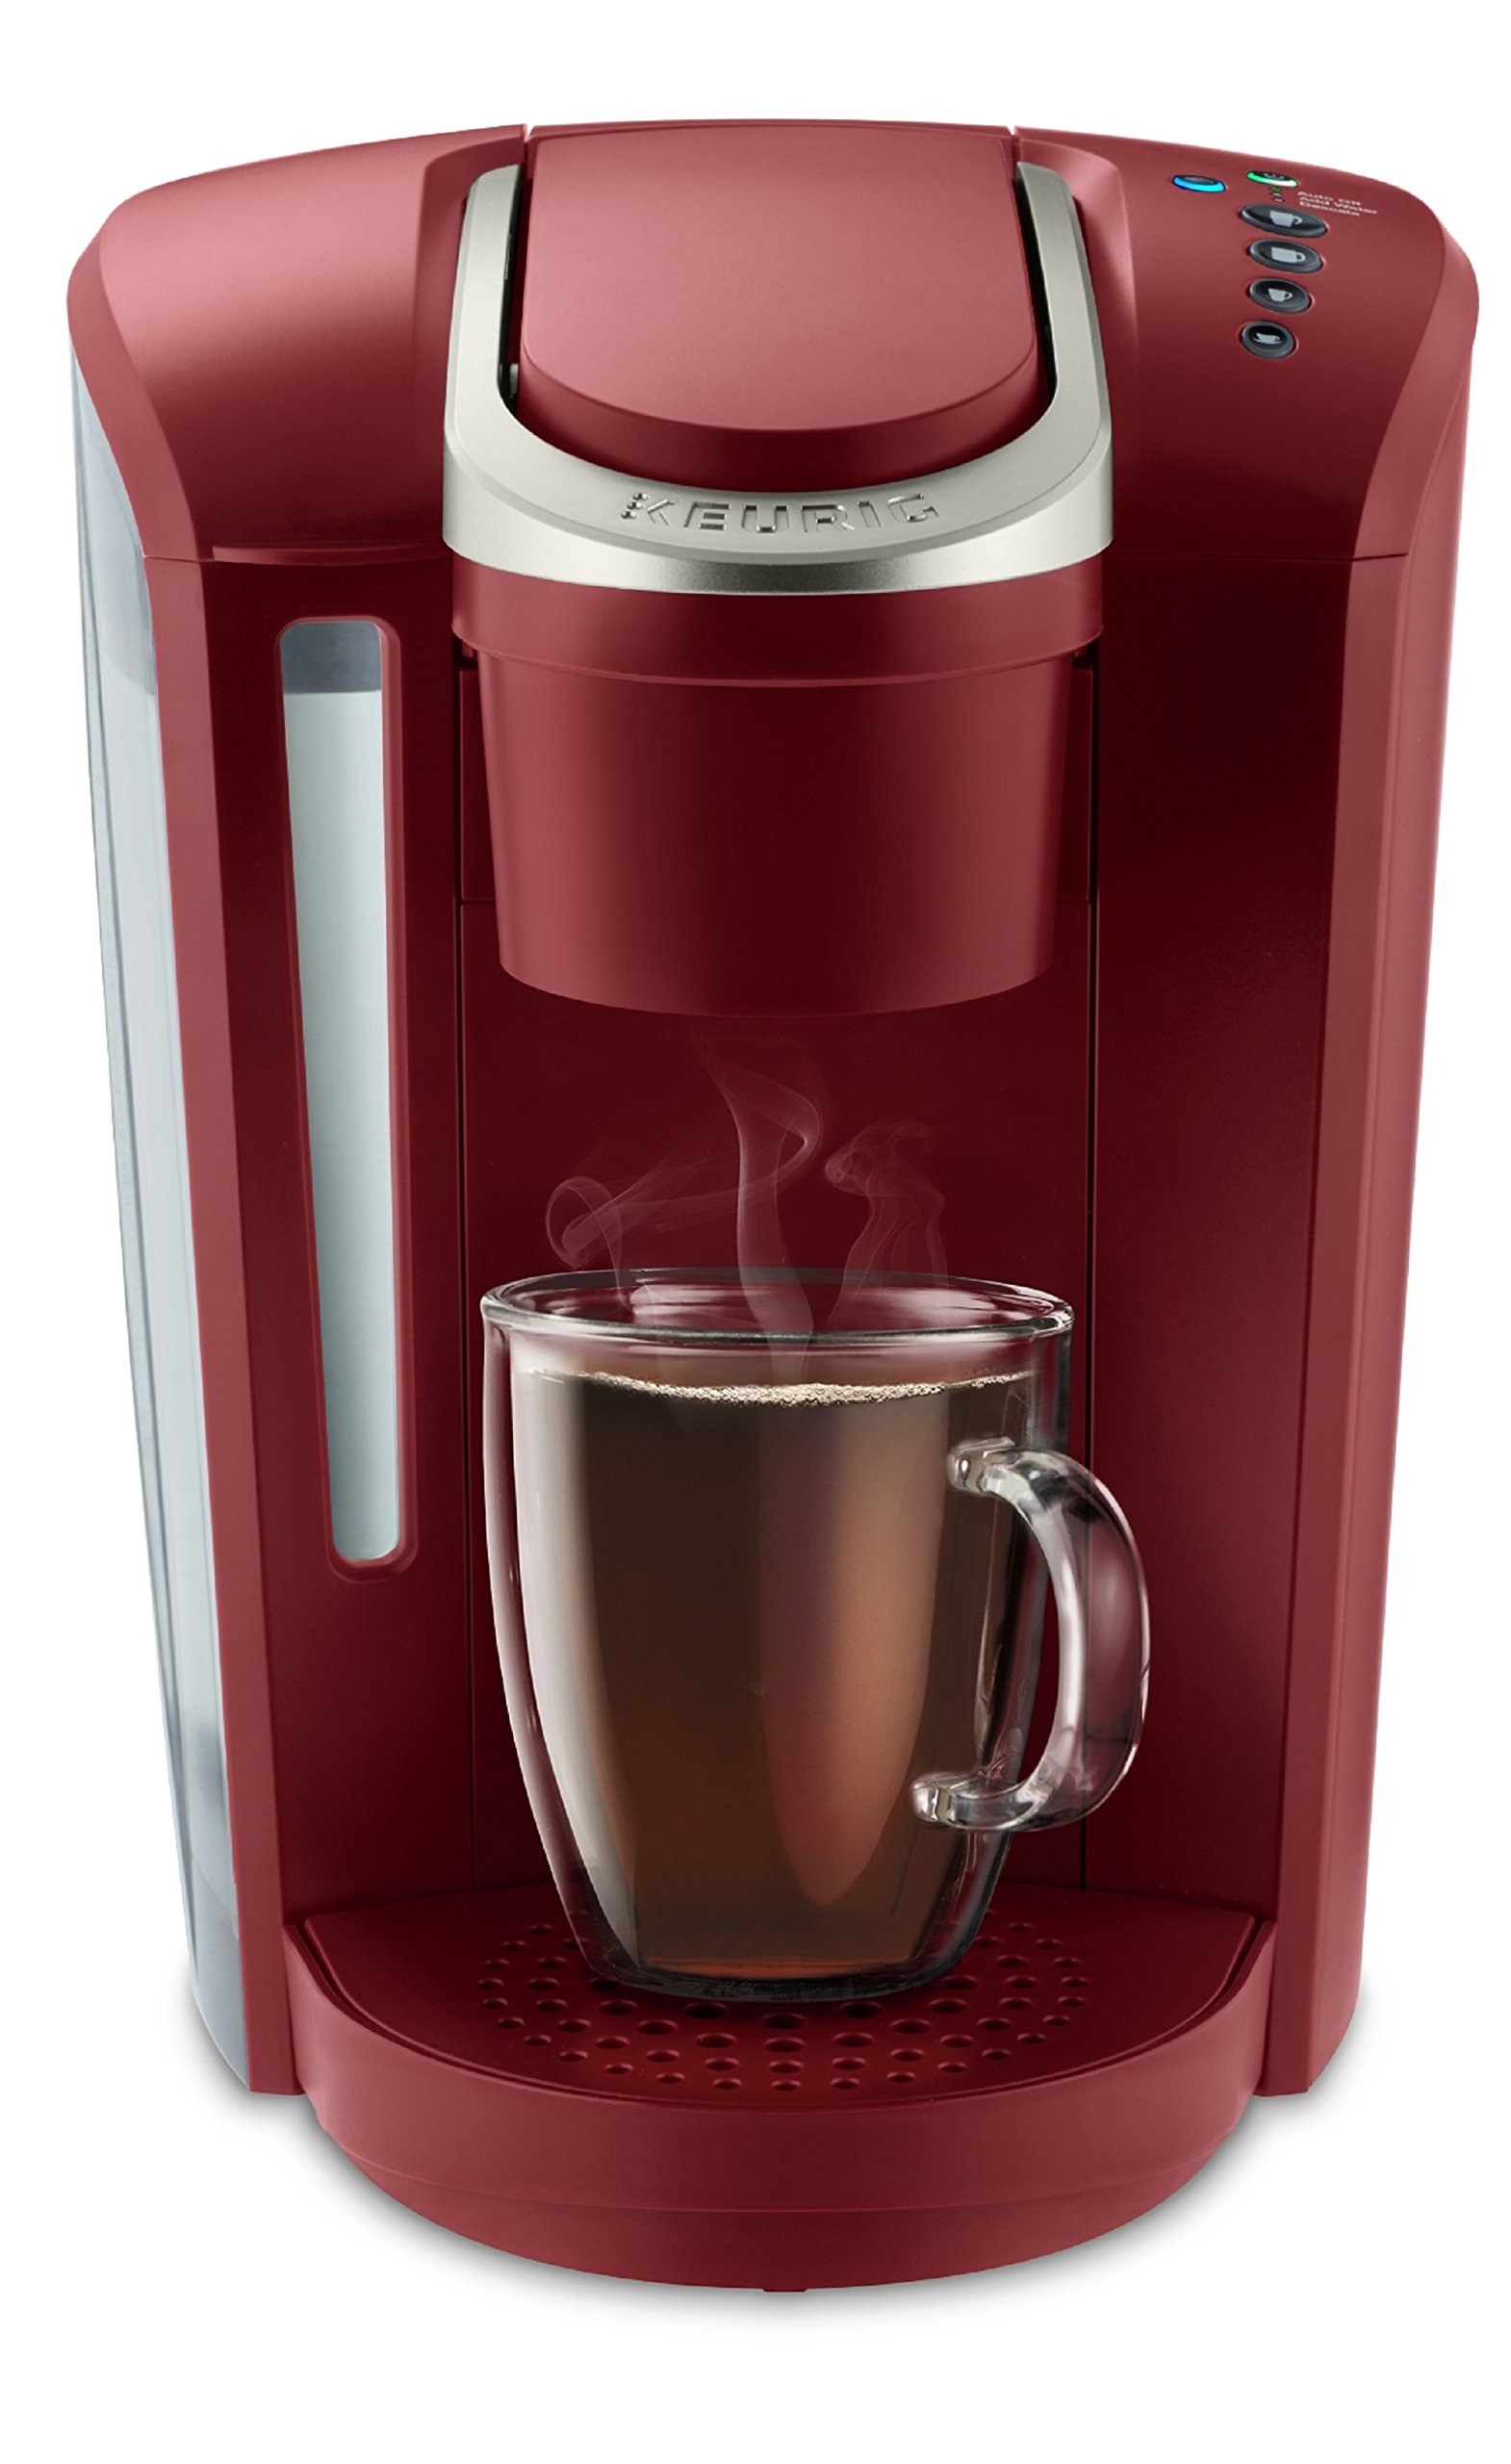 Keurig K-Select Single-Serve K-Cup Pod Coffee Maker, Vintage Red by Keurig